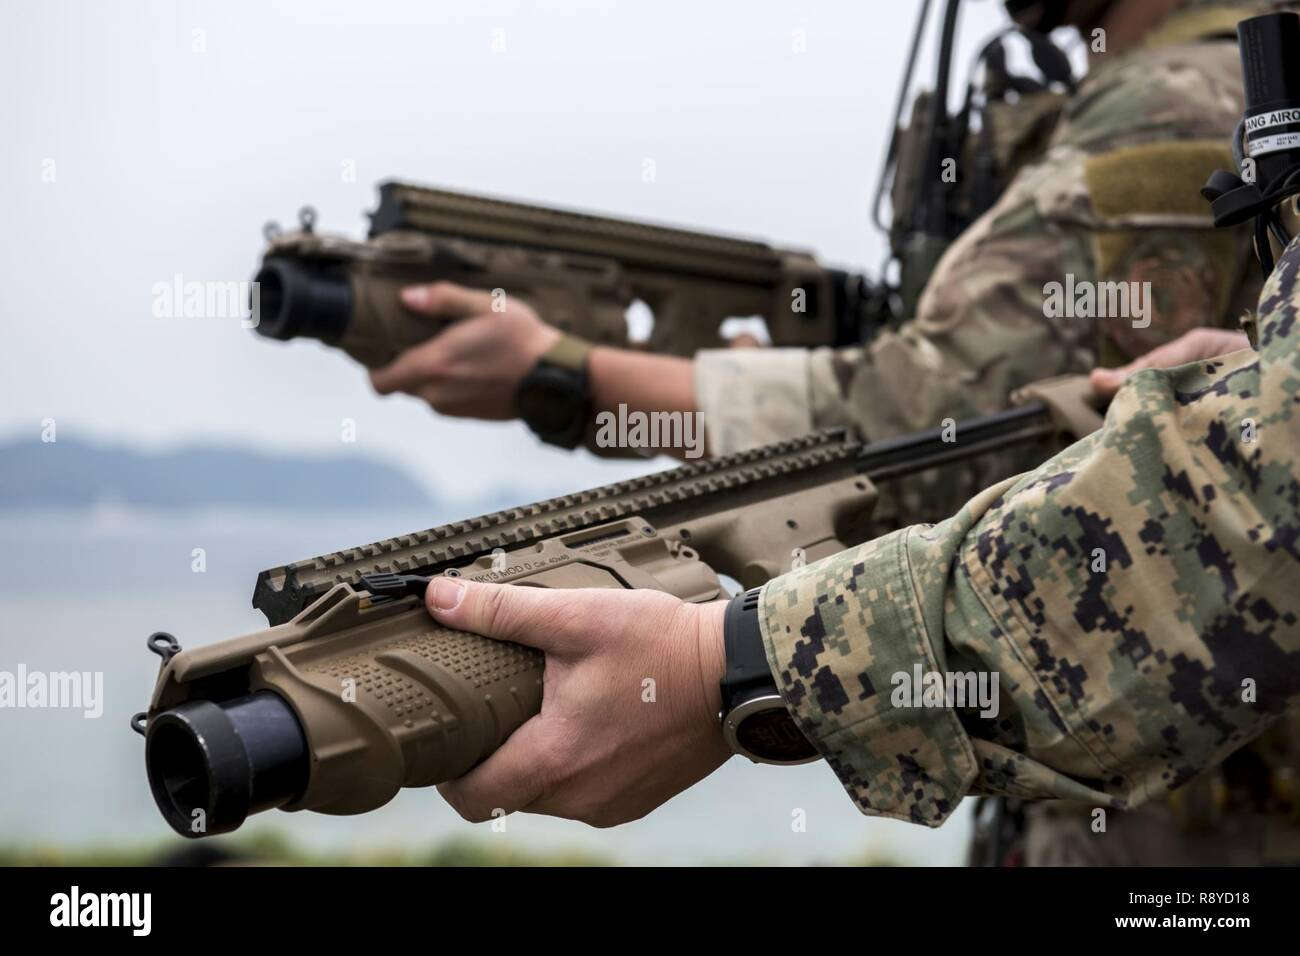 A U.S. Air Force combat controller from the 320th Special Tactics Squadron, and a Marine joint terminal attack controller from the 5th Air Naval Gunfire Liaison Company, III Marine Expeditionary Force, wield 40 mm grenade launchers during a training exercise March 10, 2017, at the Irisuna Jima Training Range, Okinawa, Japan. The launchers are used to shoot out smoke grenades as a visual marker for friendly aircraft. - Stock Image